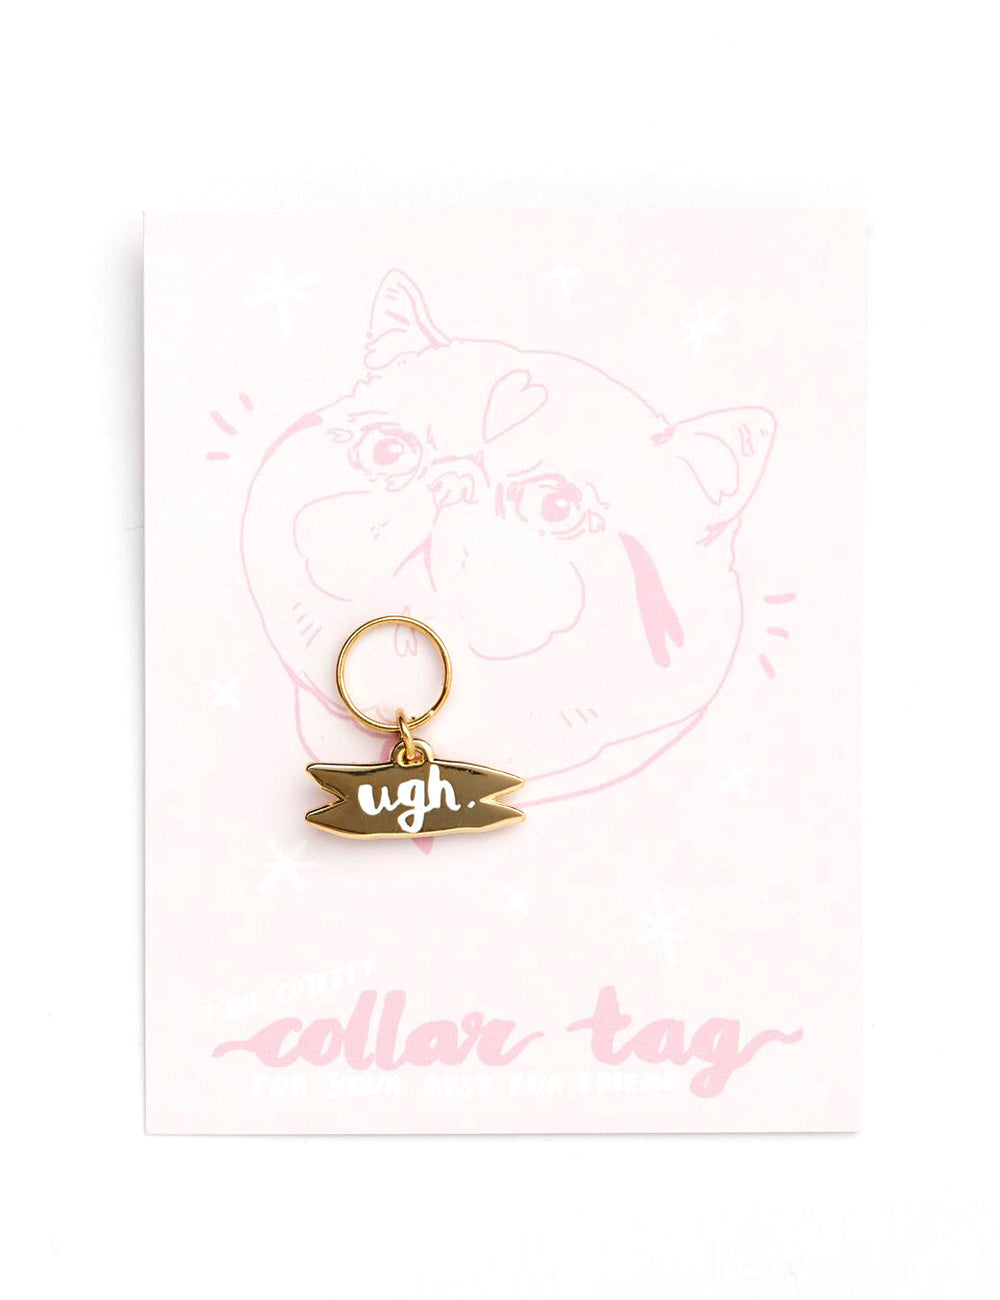 'Ugh' Collar Tag | Gold